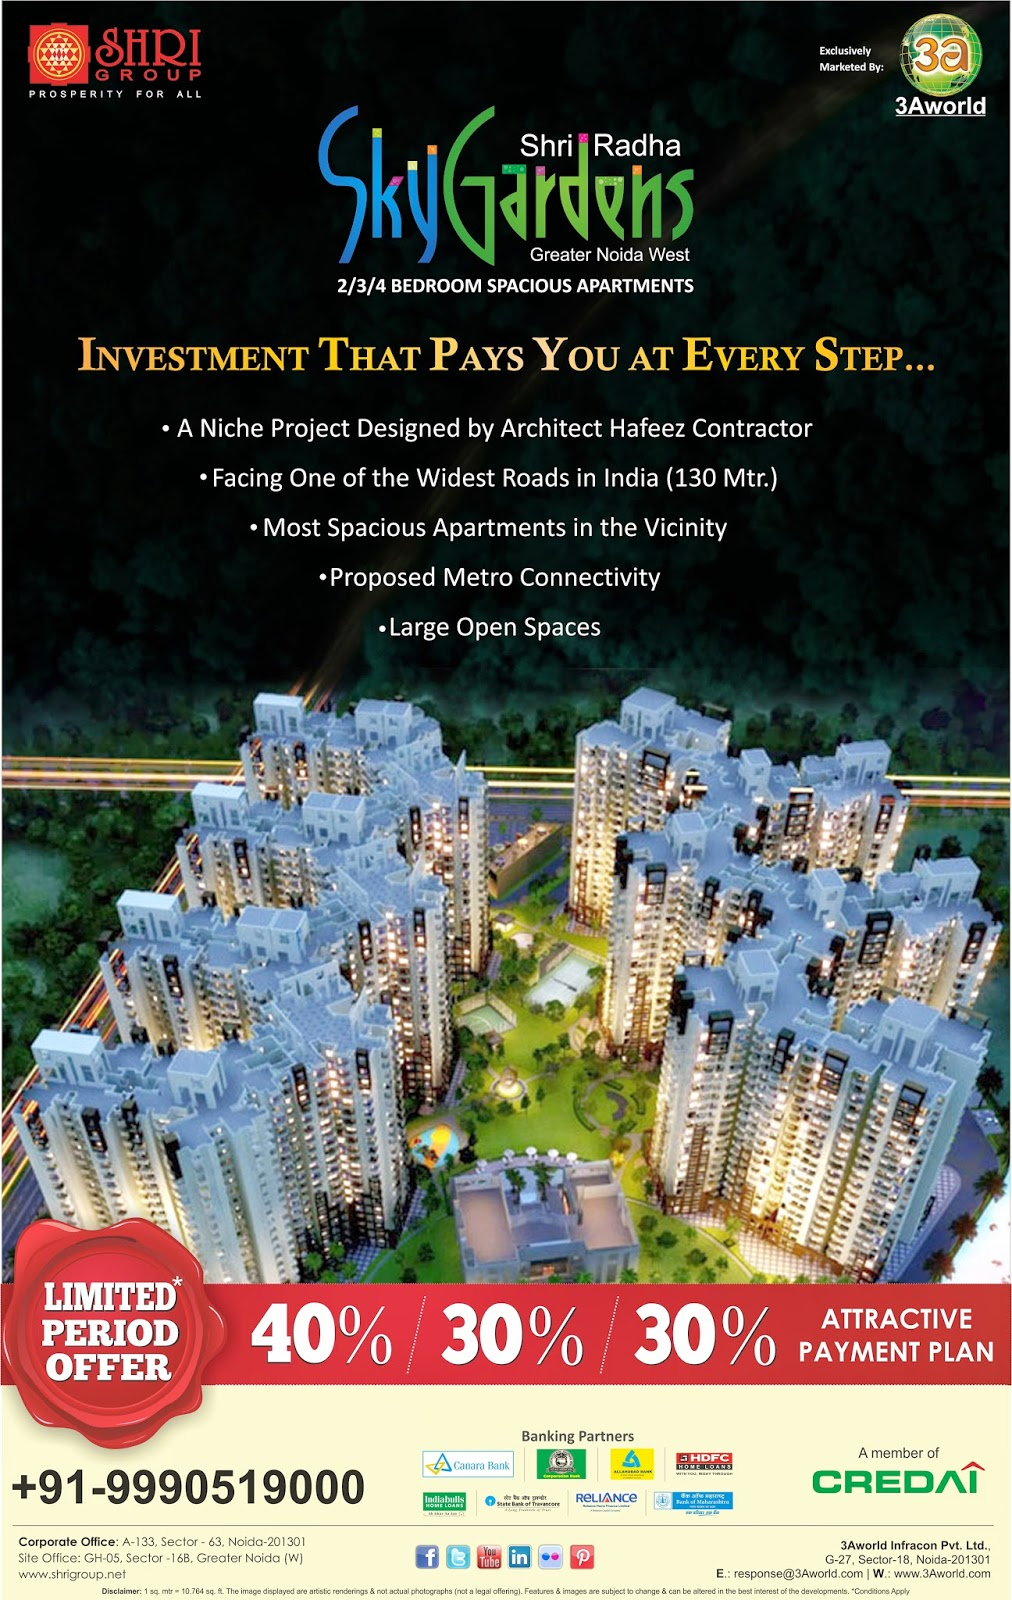 Buy Residential Property by SHRI Radha SkyGardens in Greater Noida West